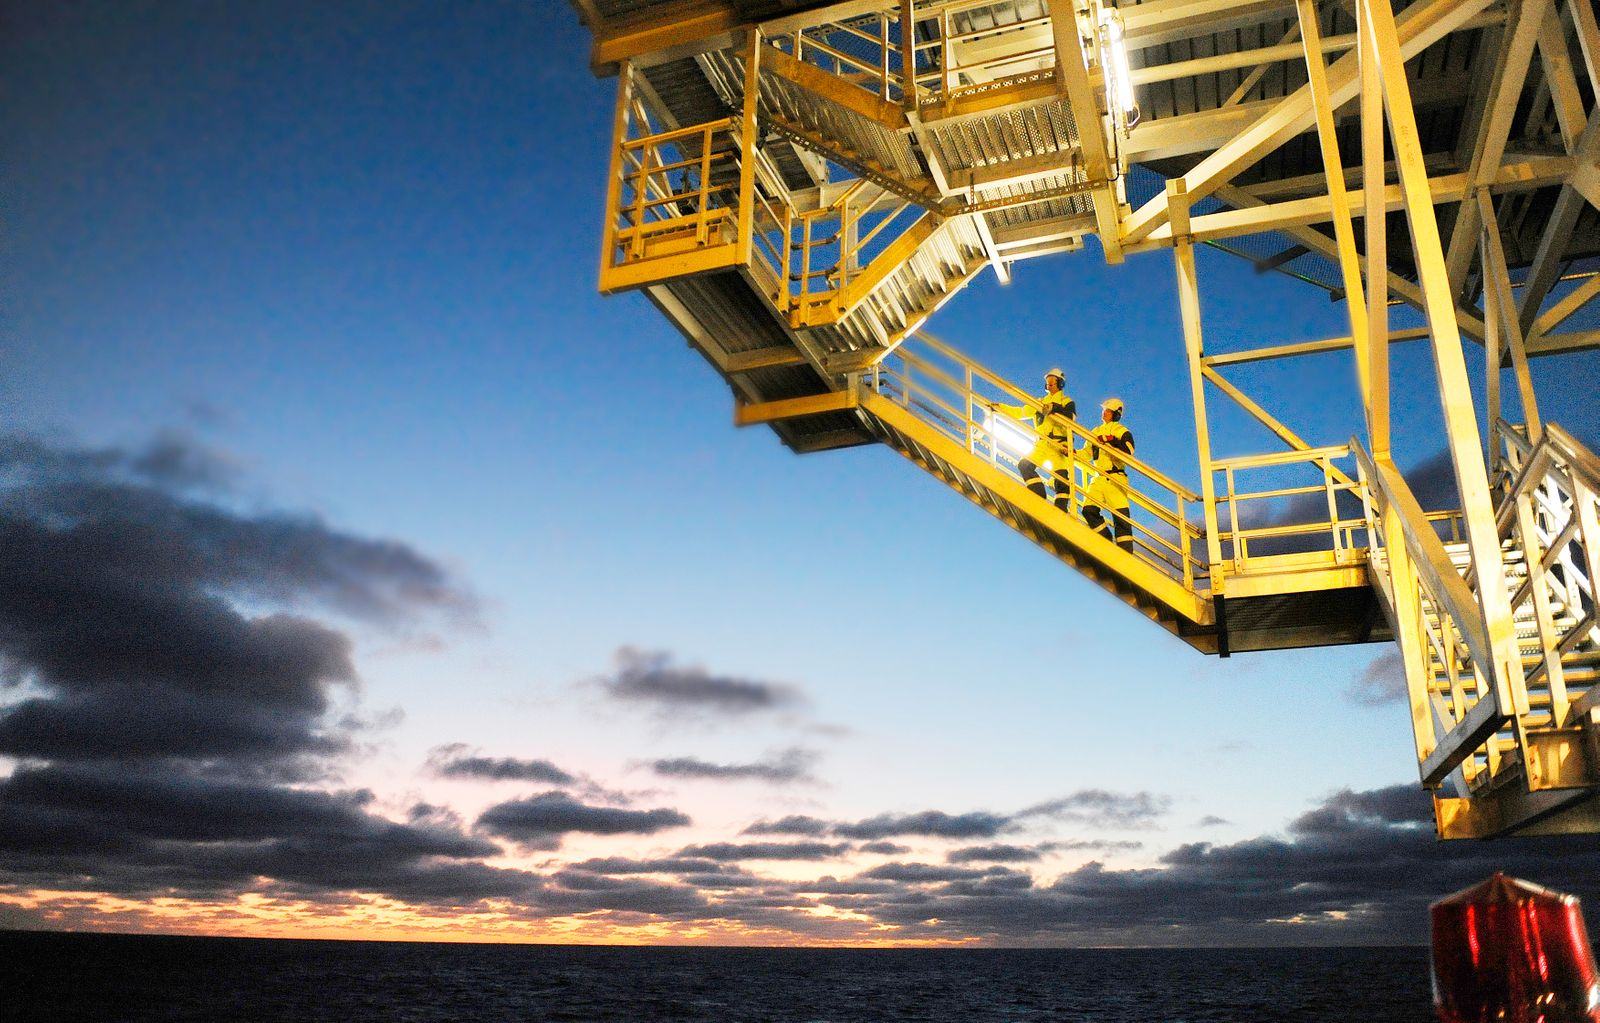 The Aker Barents drilling rig in Barents Sea